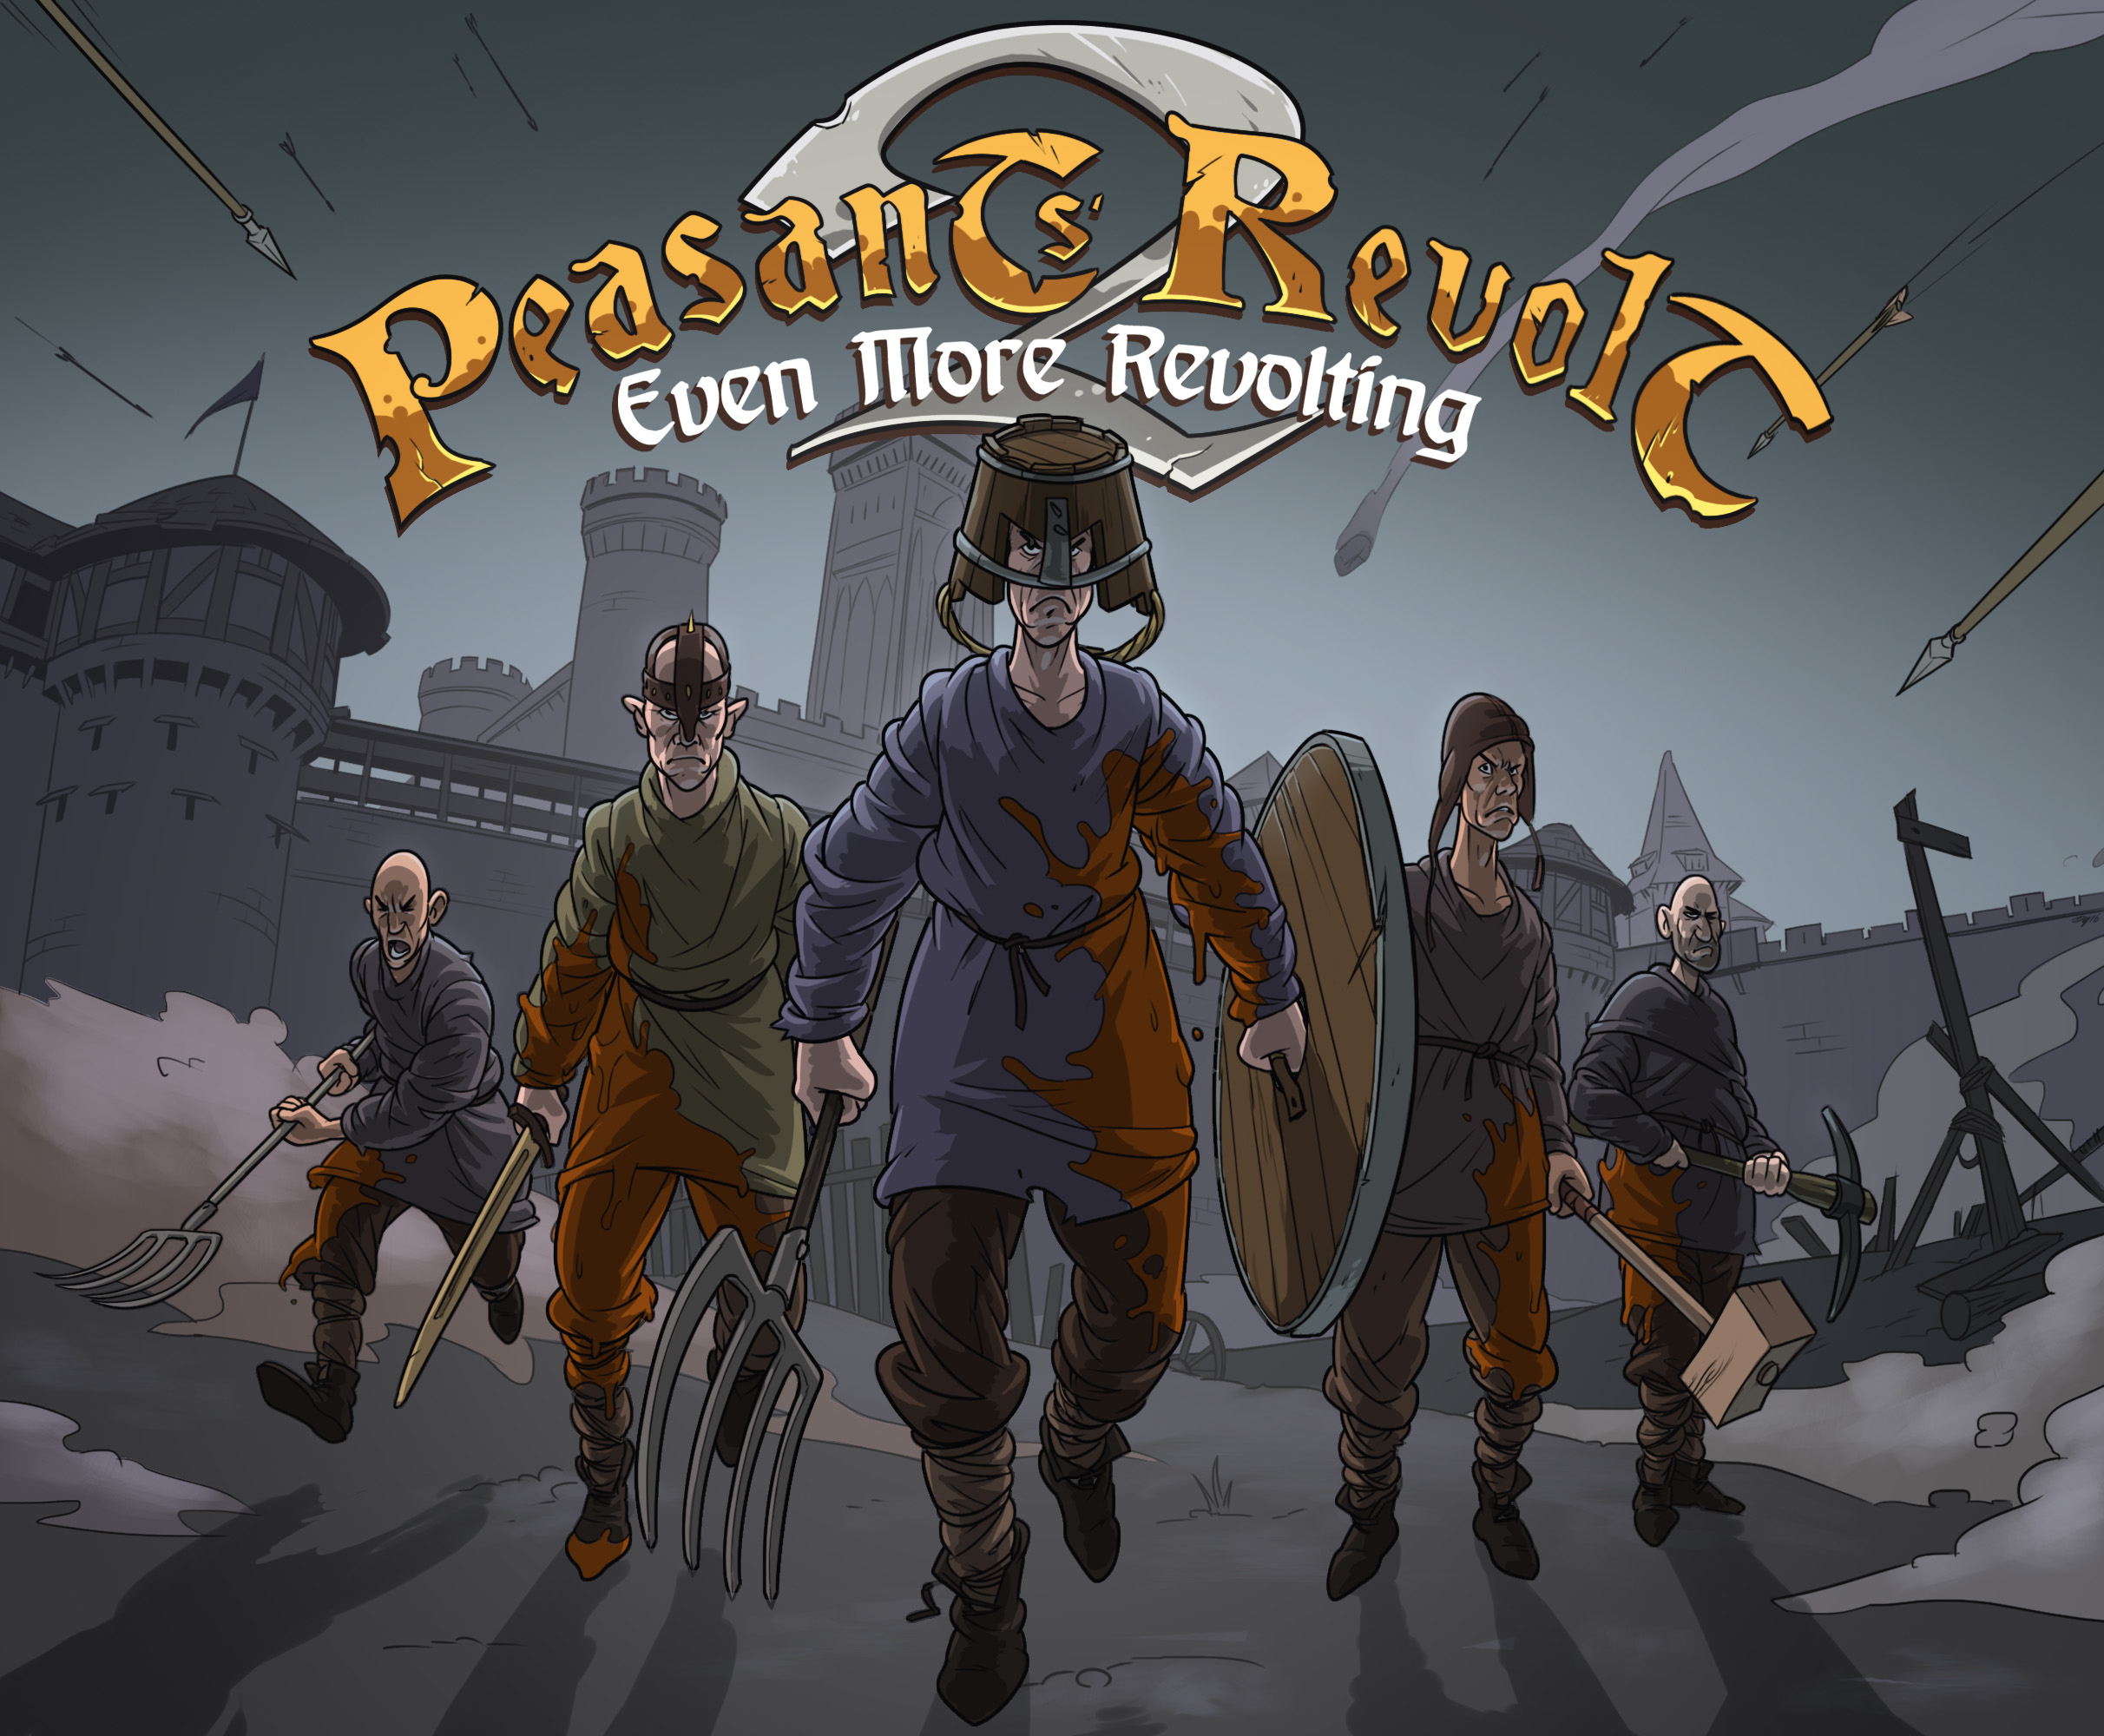 Peasants Revolt 2